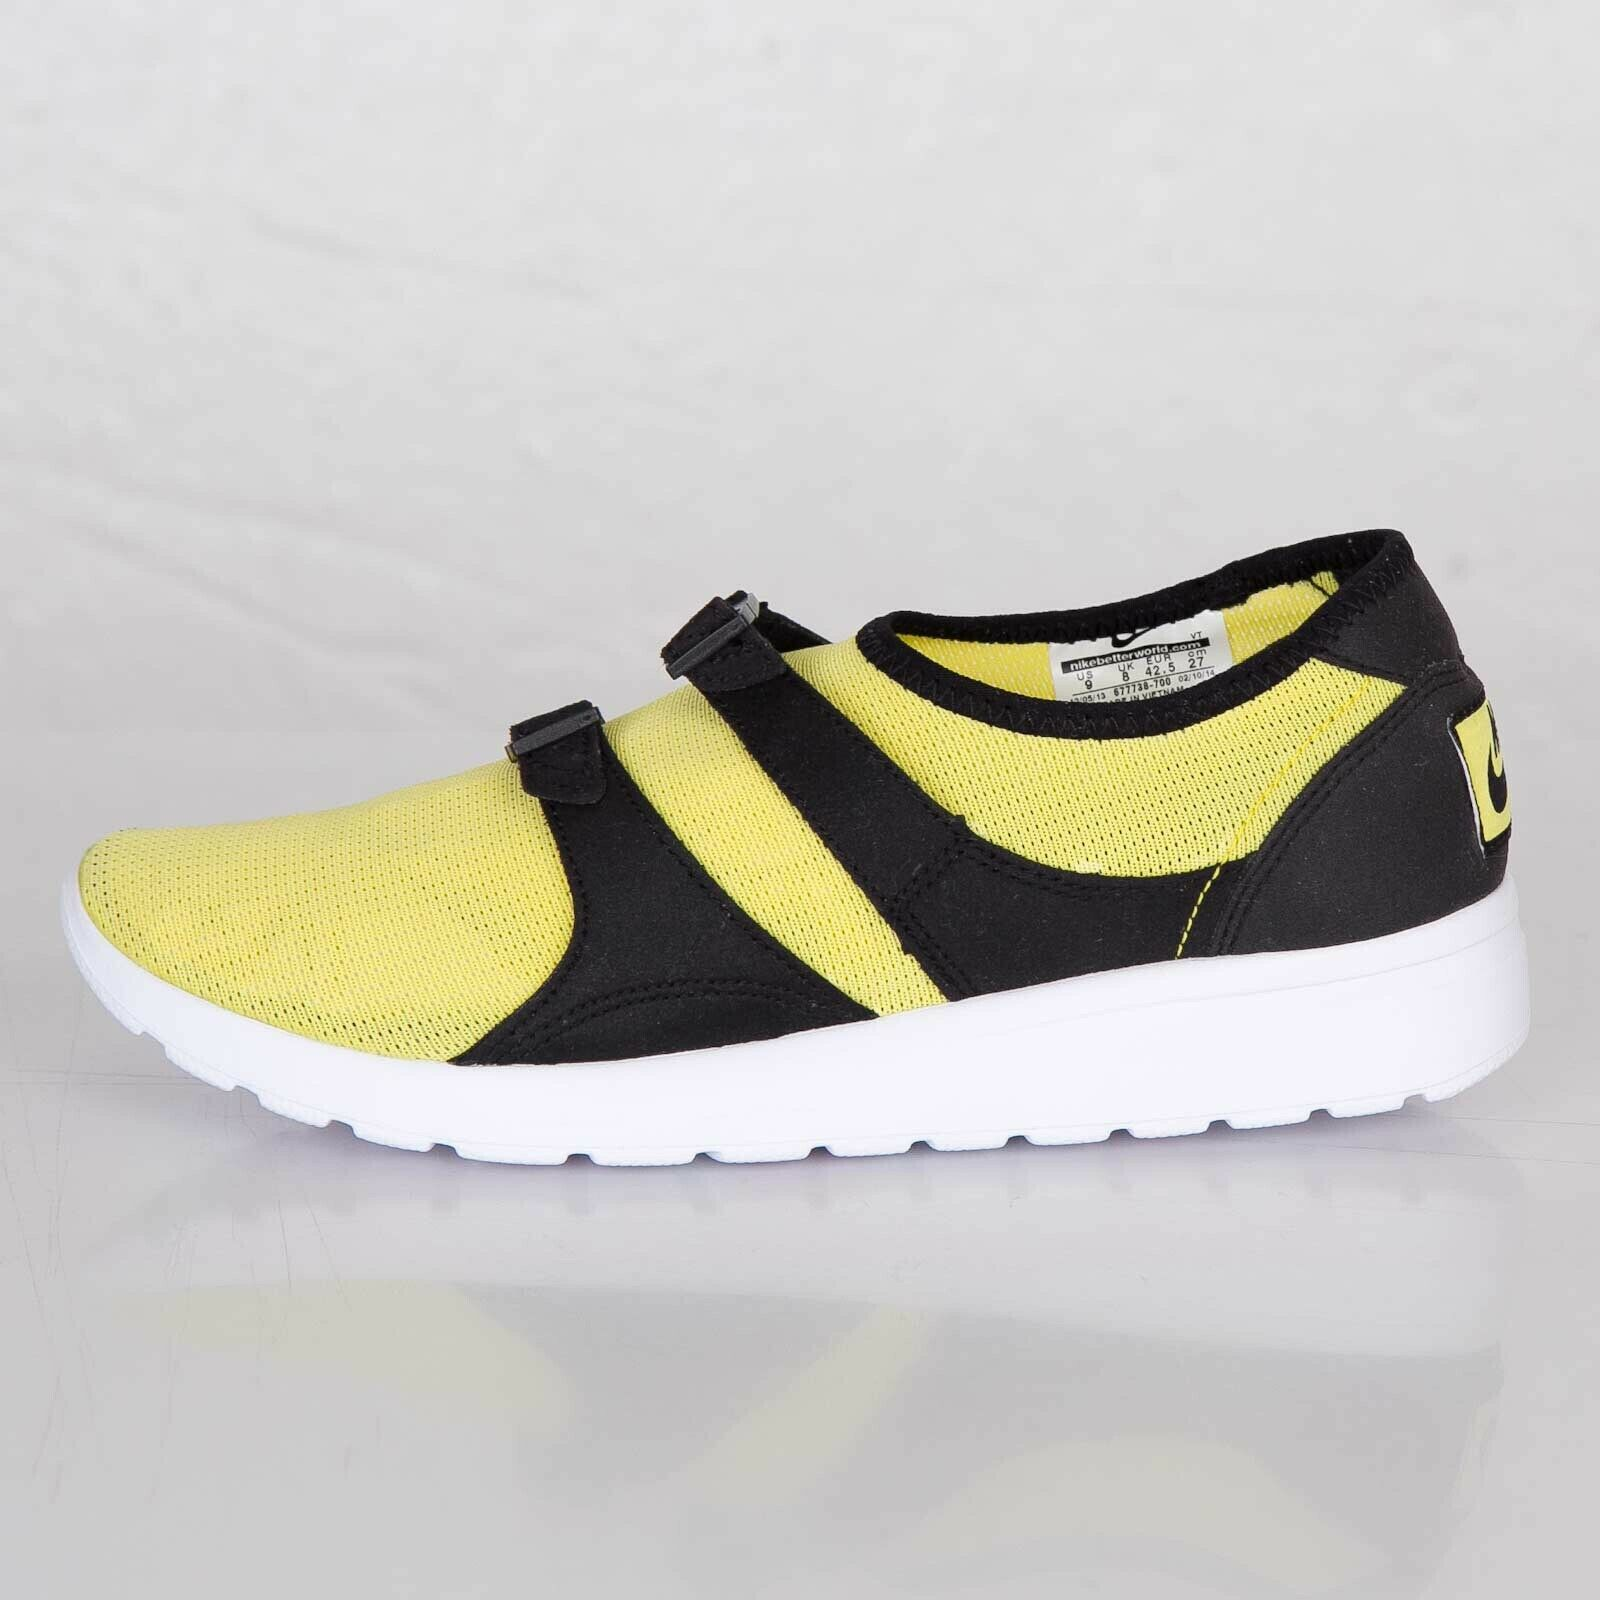 Nike Air Sock Racer size 12 (Yellow)